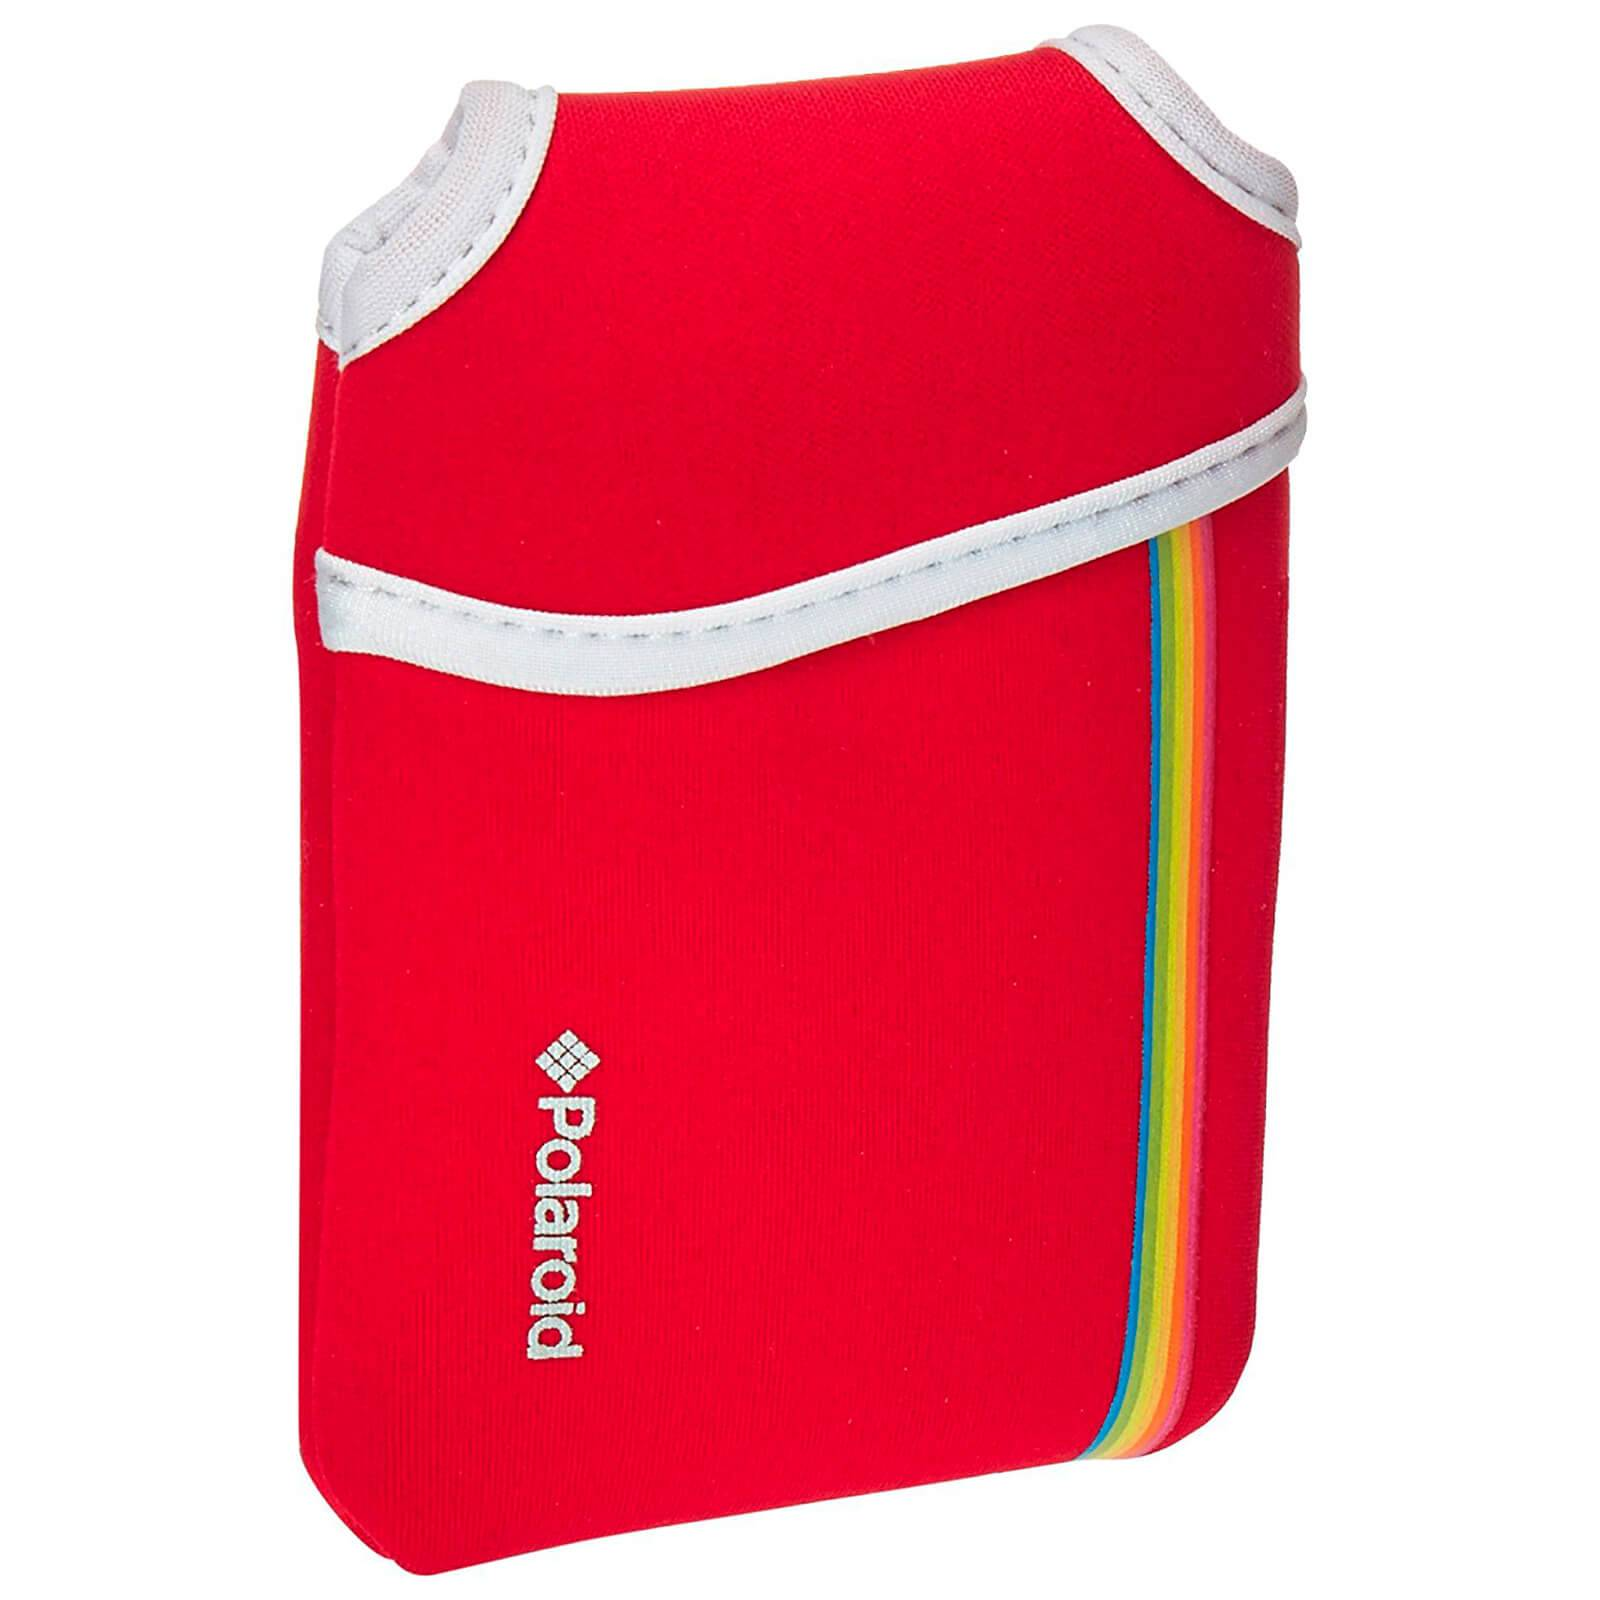 Polaroid Neoprene Pouch (For Snap Instant Digital Print Camera) - Red